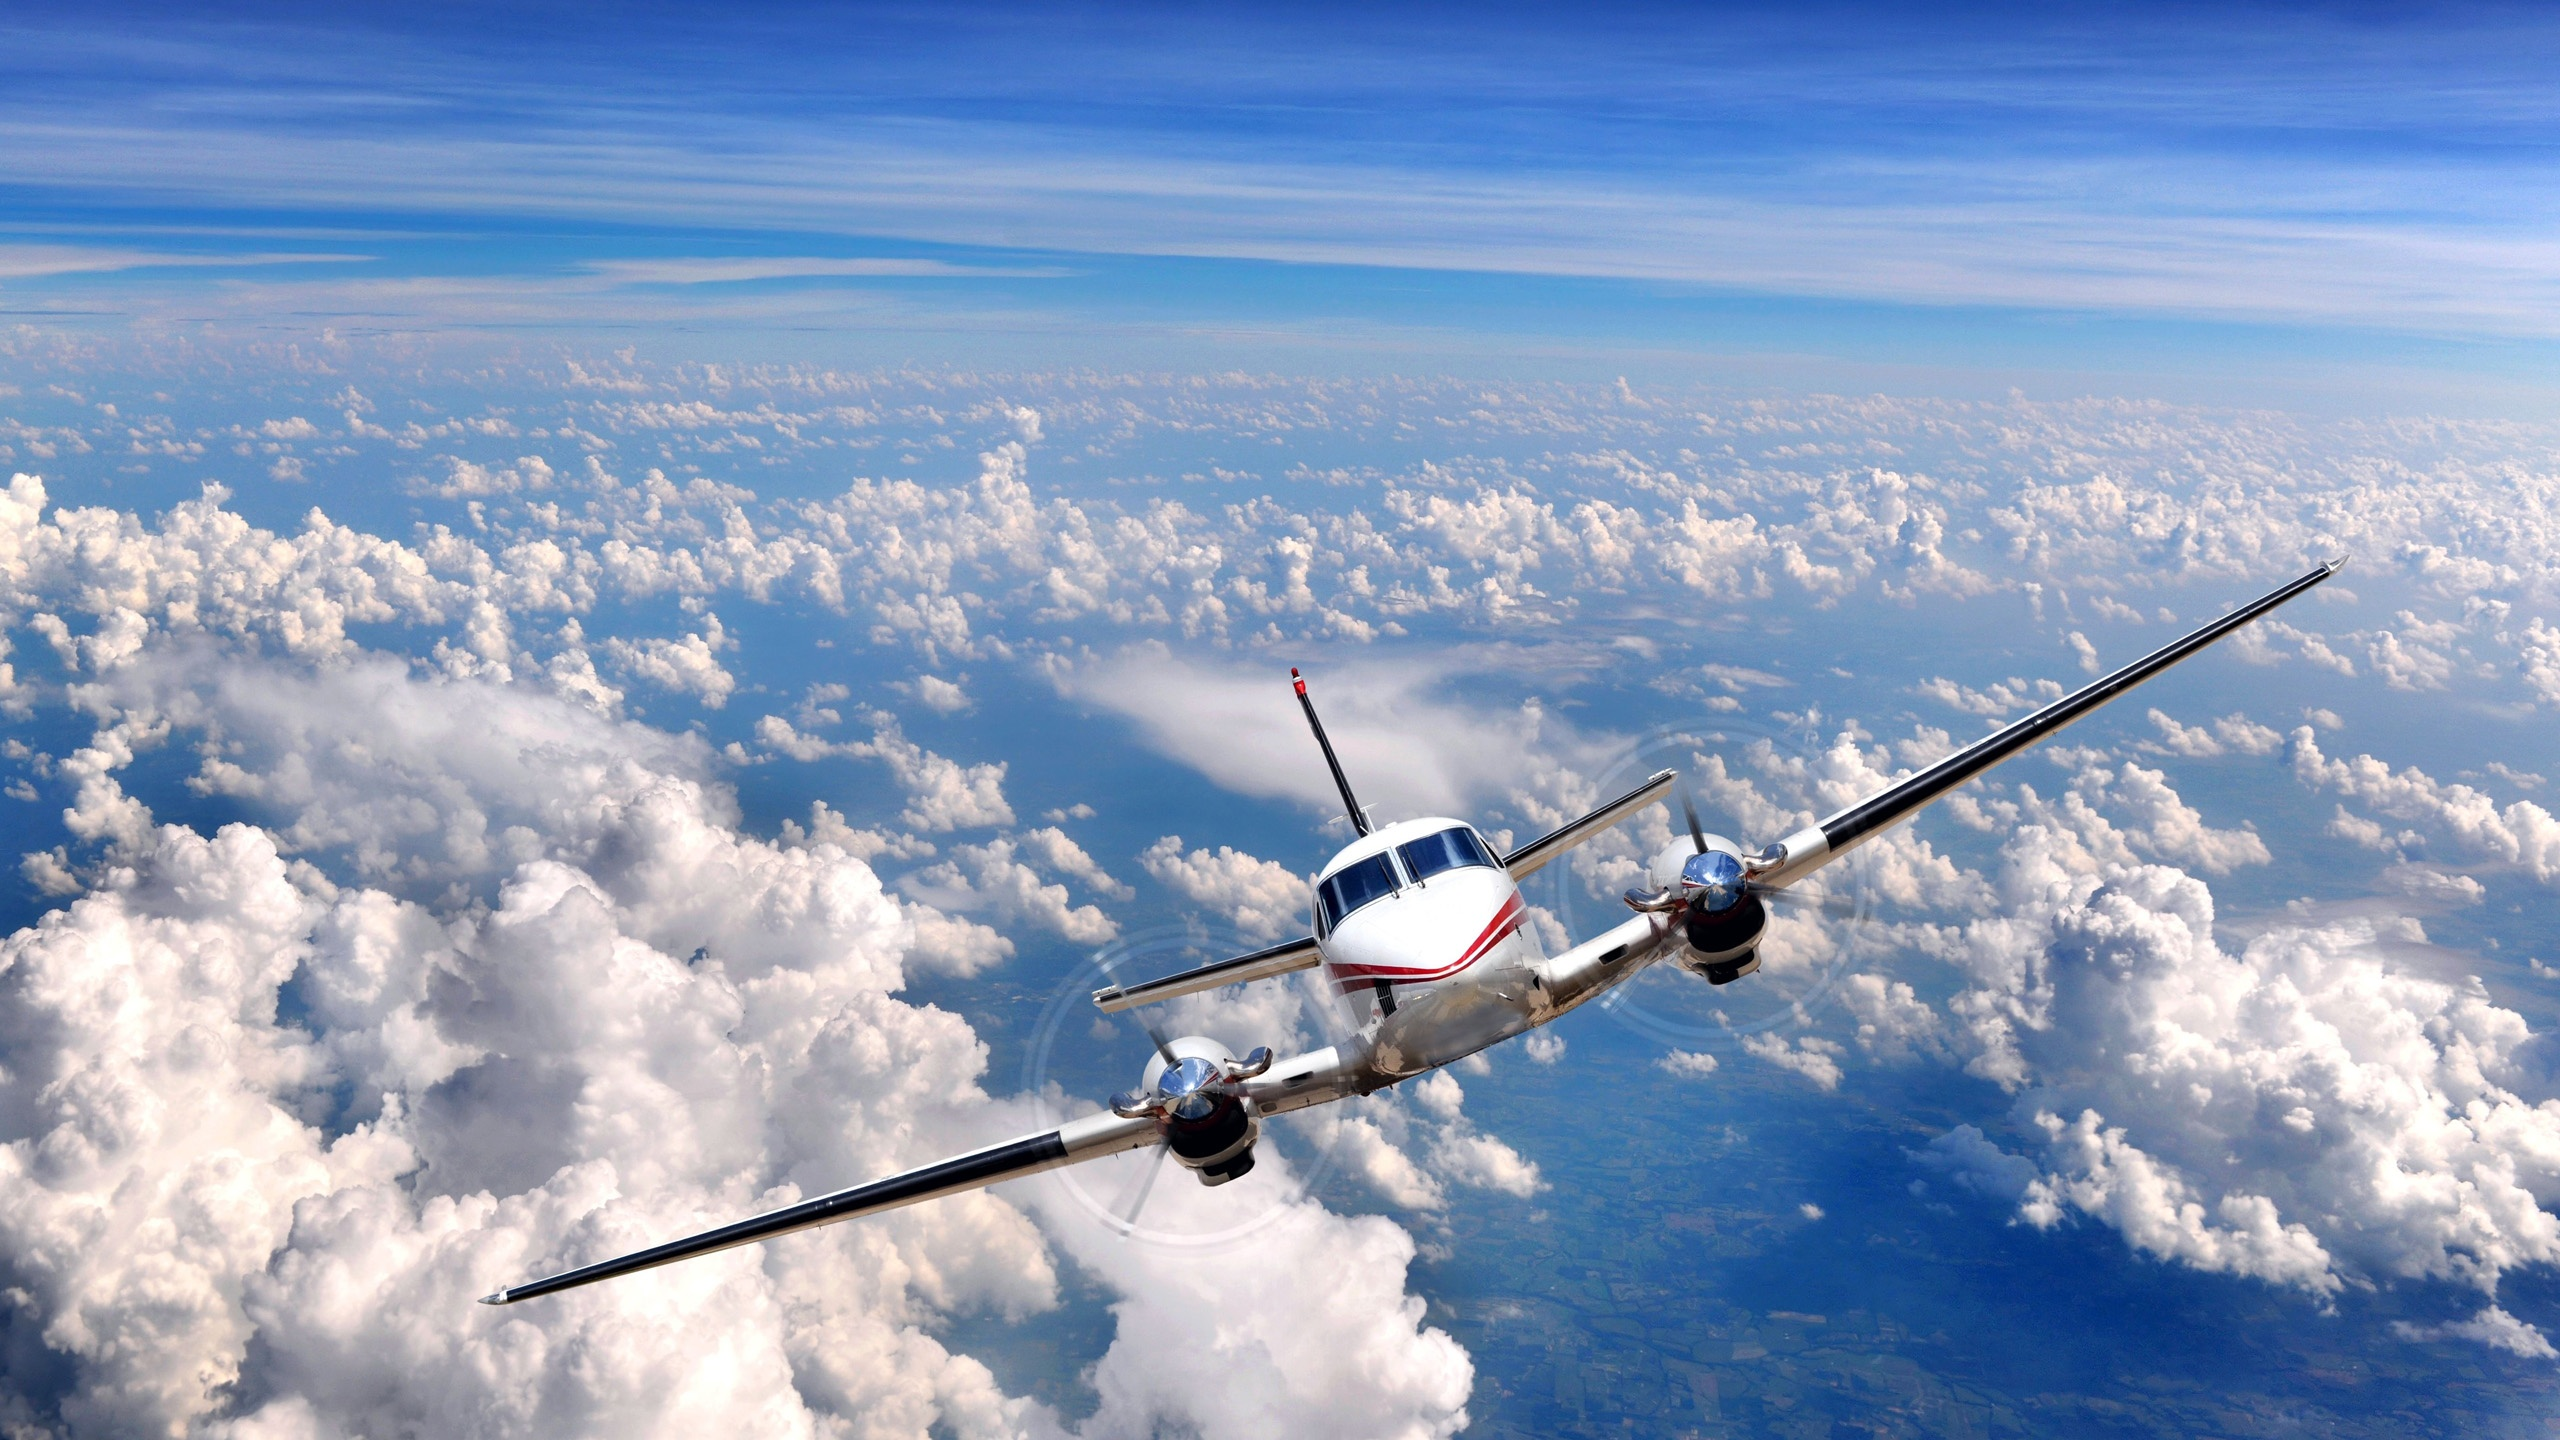 aircraft images in clouds wallpaper - photo #7